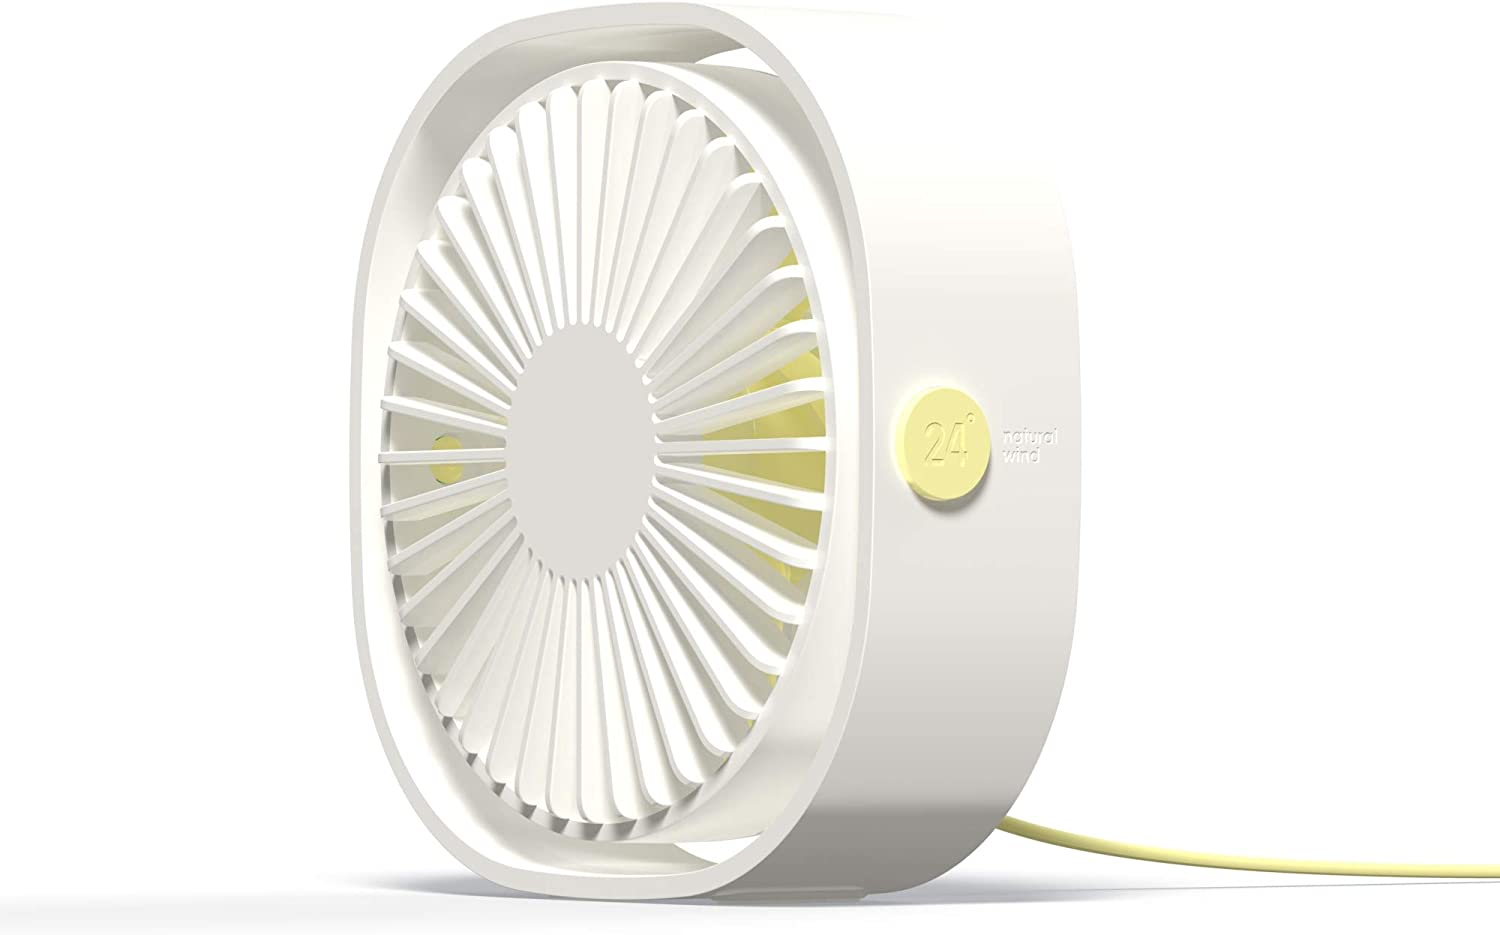 Esthepro USB Desk Fan, Portable Desktop Table Cooling Fan, Three Speeds Adjustable, USB Connection Power, Strong Quiet Wind, Great for Office Home Outdoor Car Travel (White)